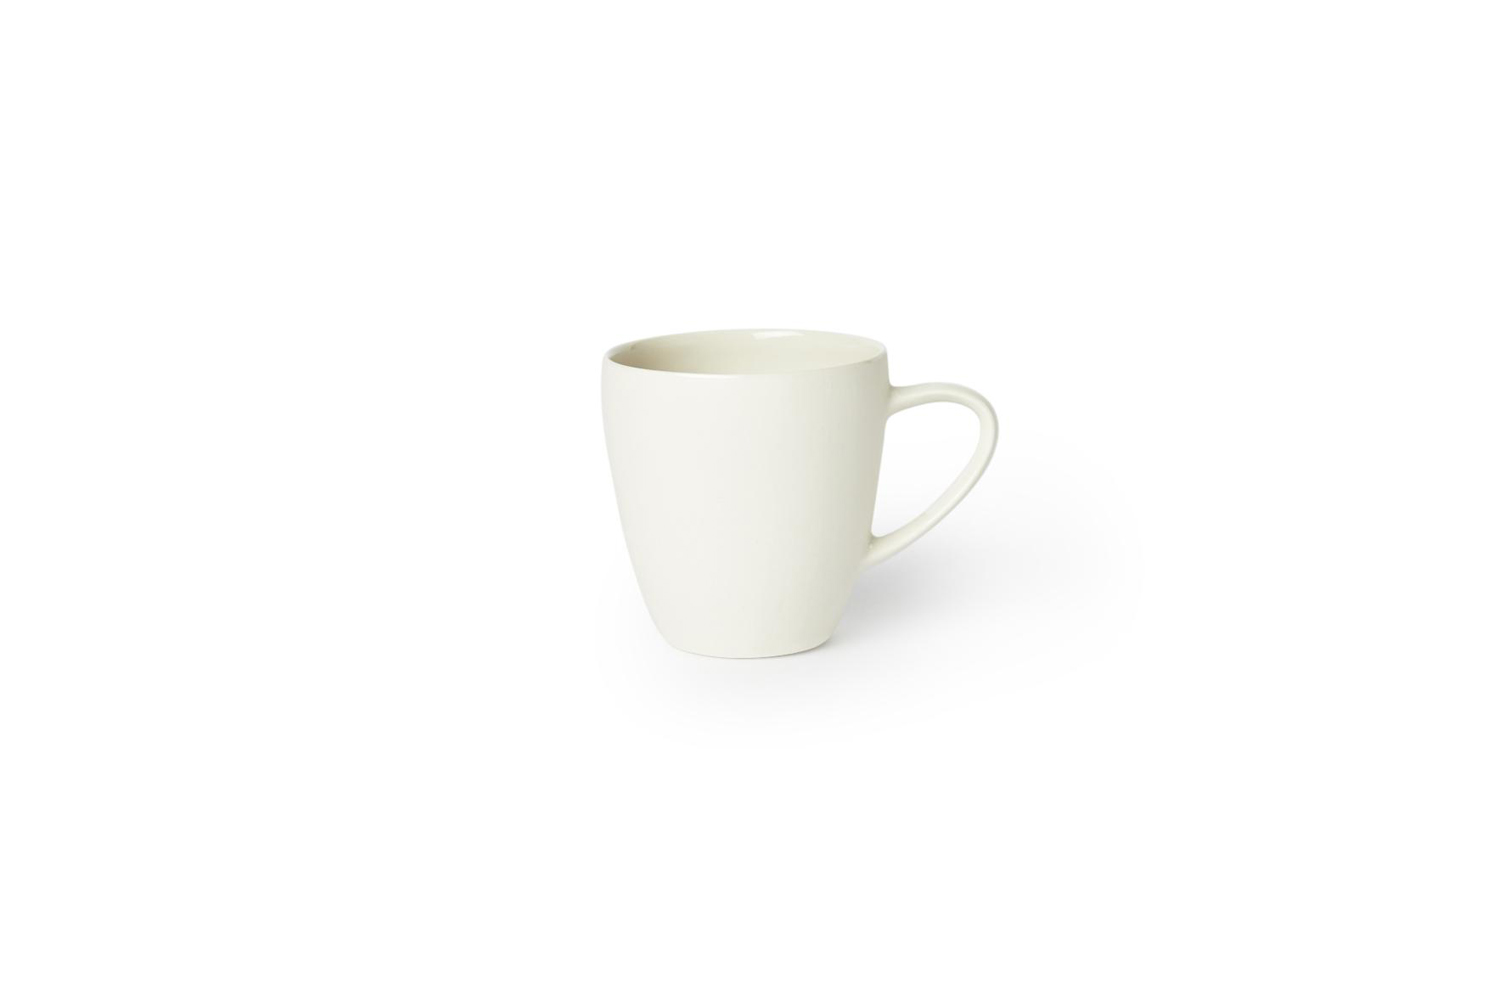 from mud australia, the mug with handle, shown in milk, is $64 aud at mud. 13